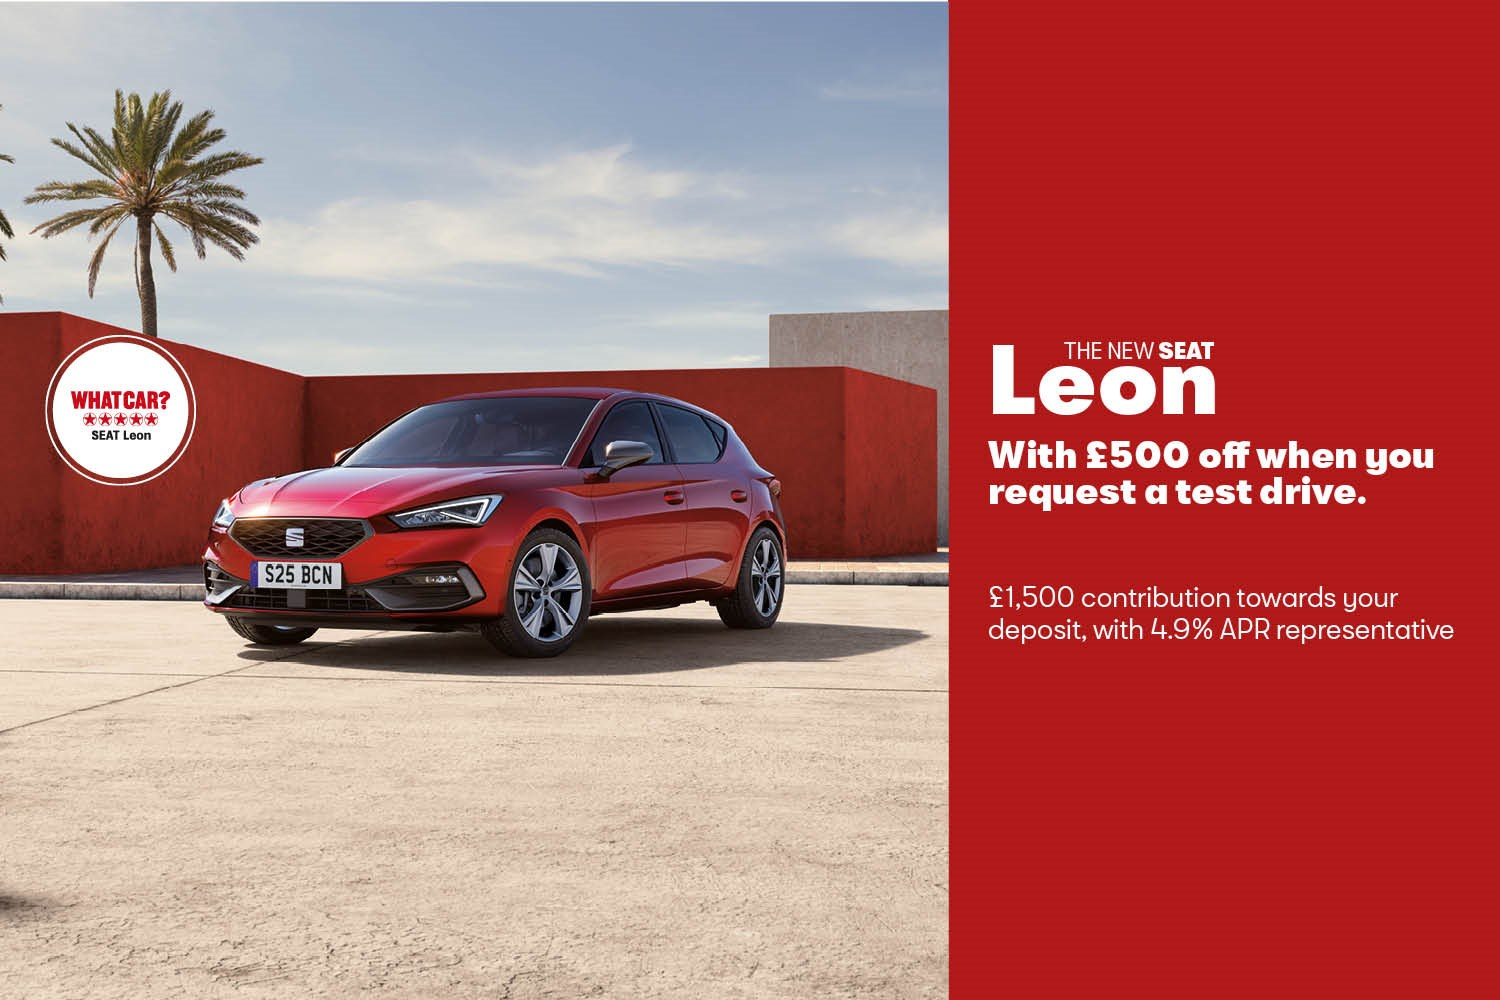 Seat Leon offer banner £500 test drive saving, £1500 deposit contribution and 4.9 APR